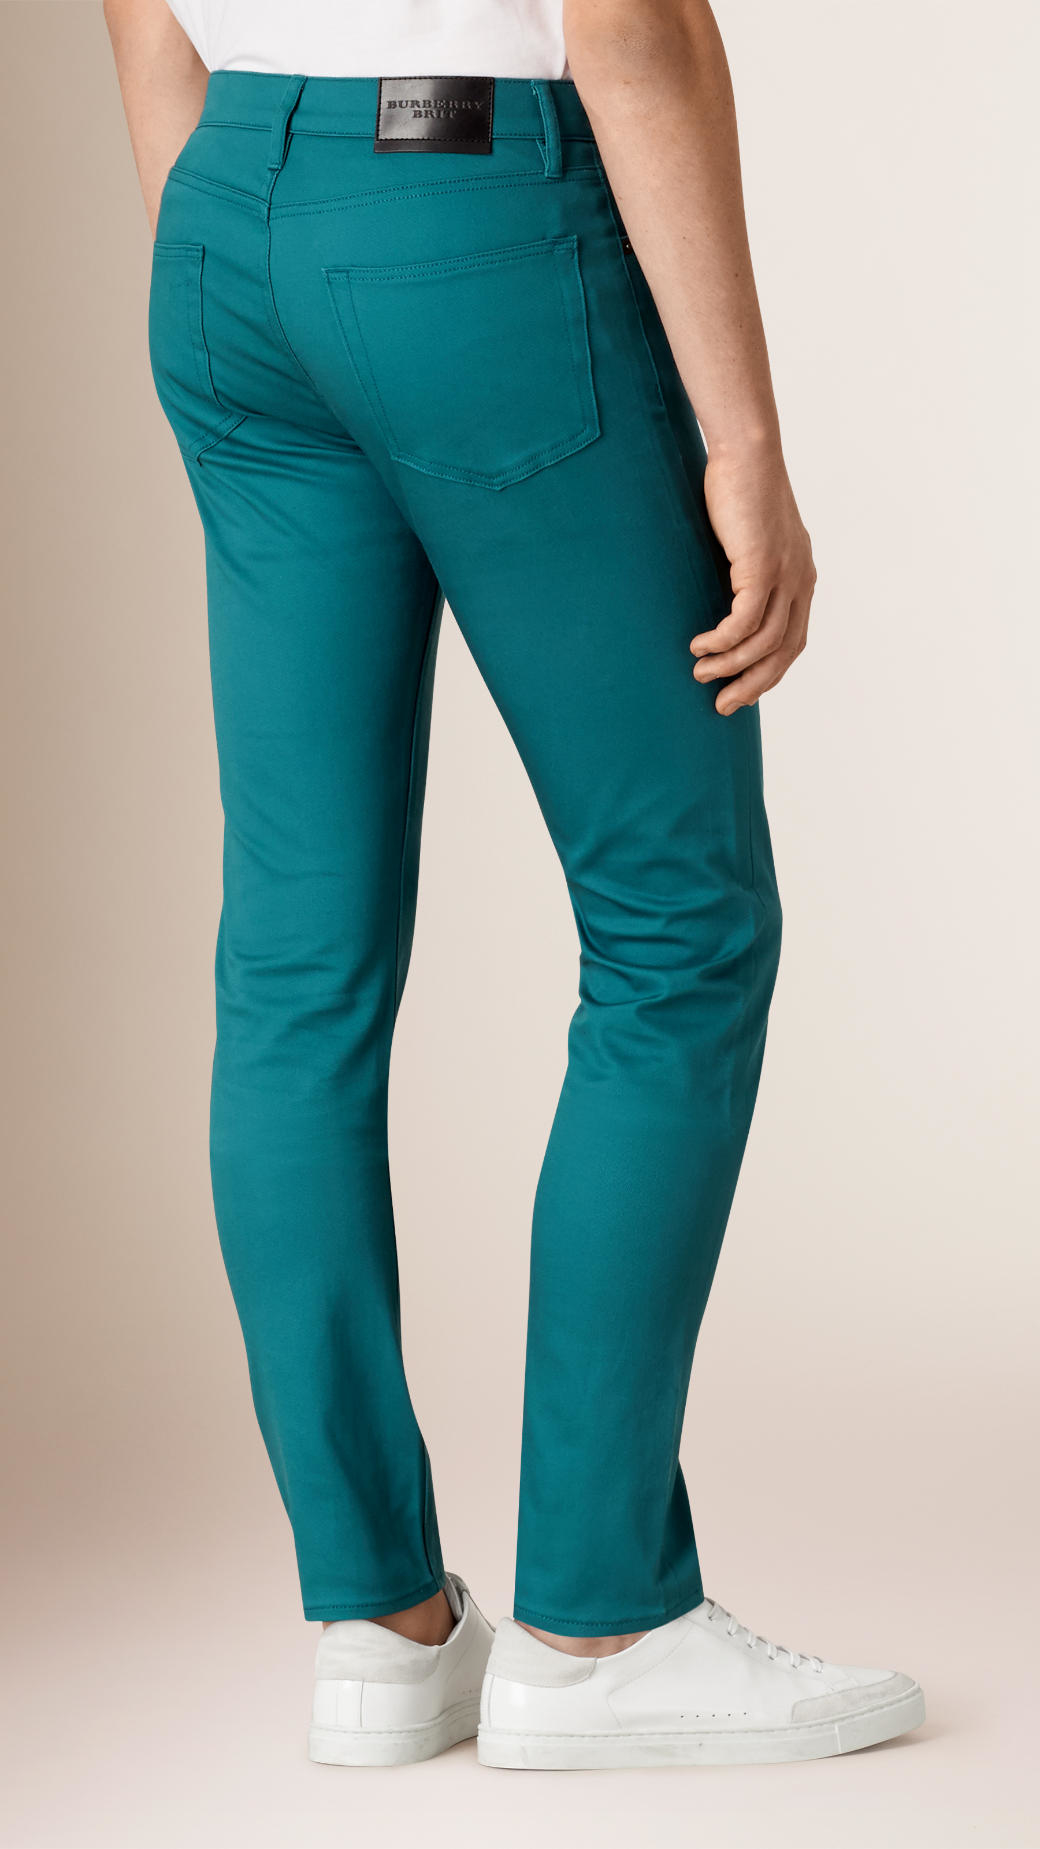 Burberry Slim Fit Japanese Stretch Denim Jeans Teal in Green for Men